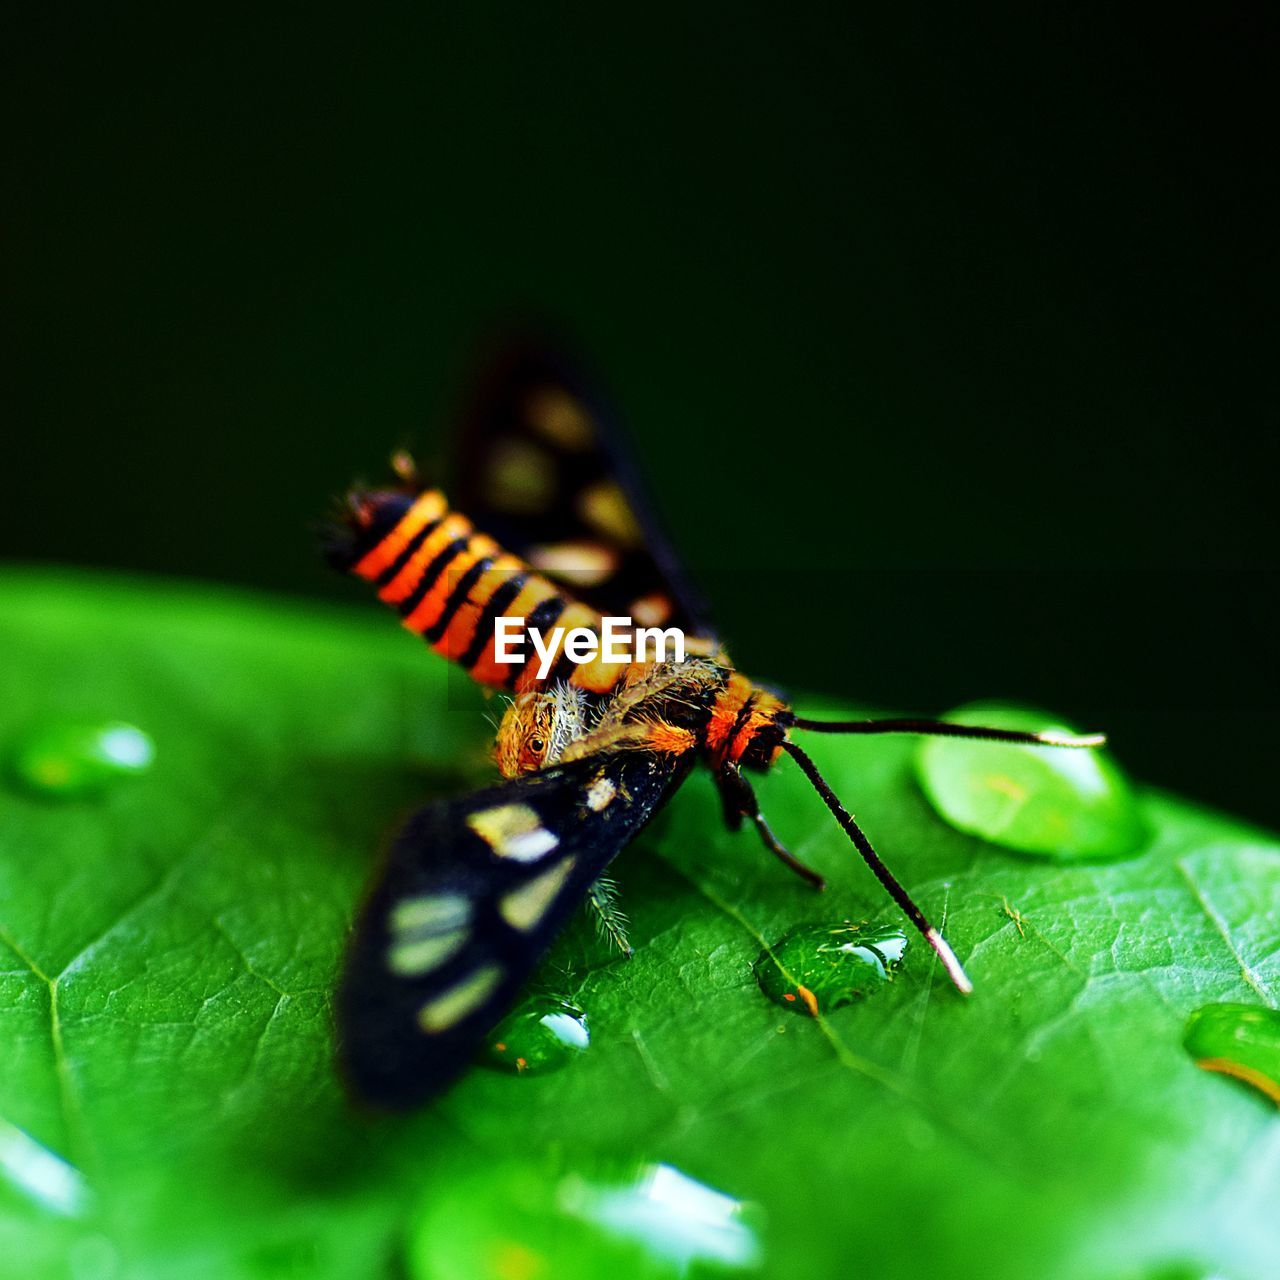 invertebrate, one animal, insect, animal wildlife, animal themes, animals in the wild, animal, plant part, leaf, green color, close-up, selective focus, no people, nature, beauty in nature, plant, day, outdoors, yellow, growth